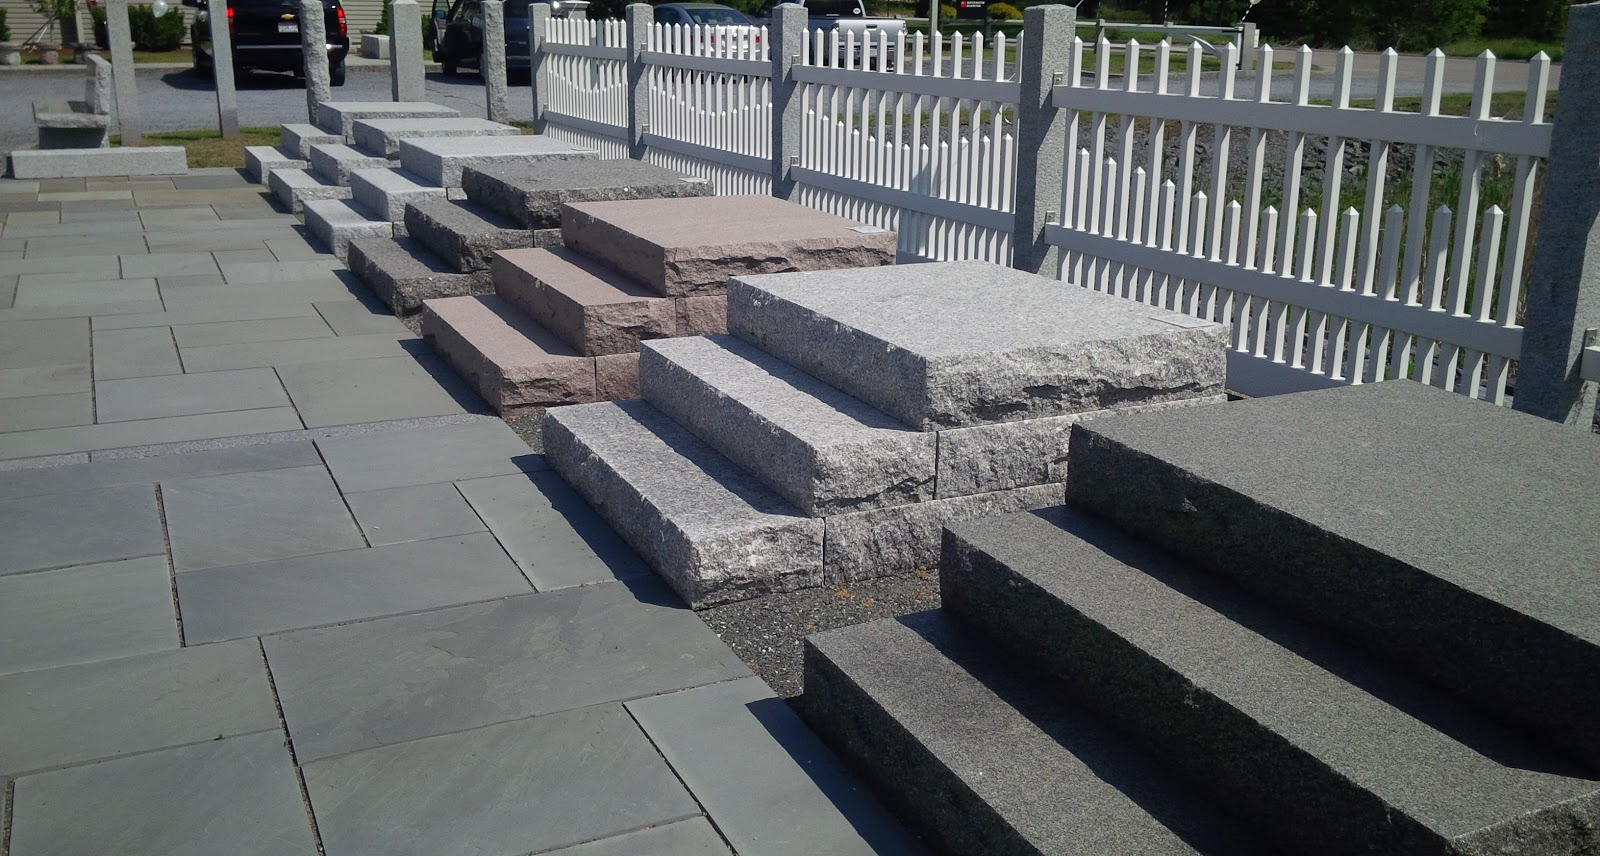 Granite steps at the Swenson Granite Works Medway store's outdoor display